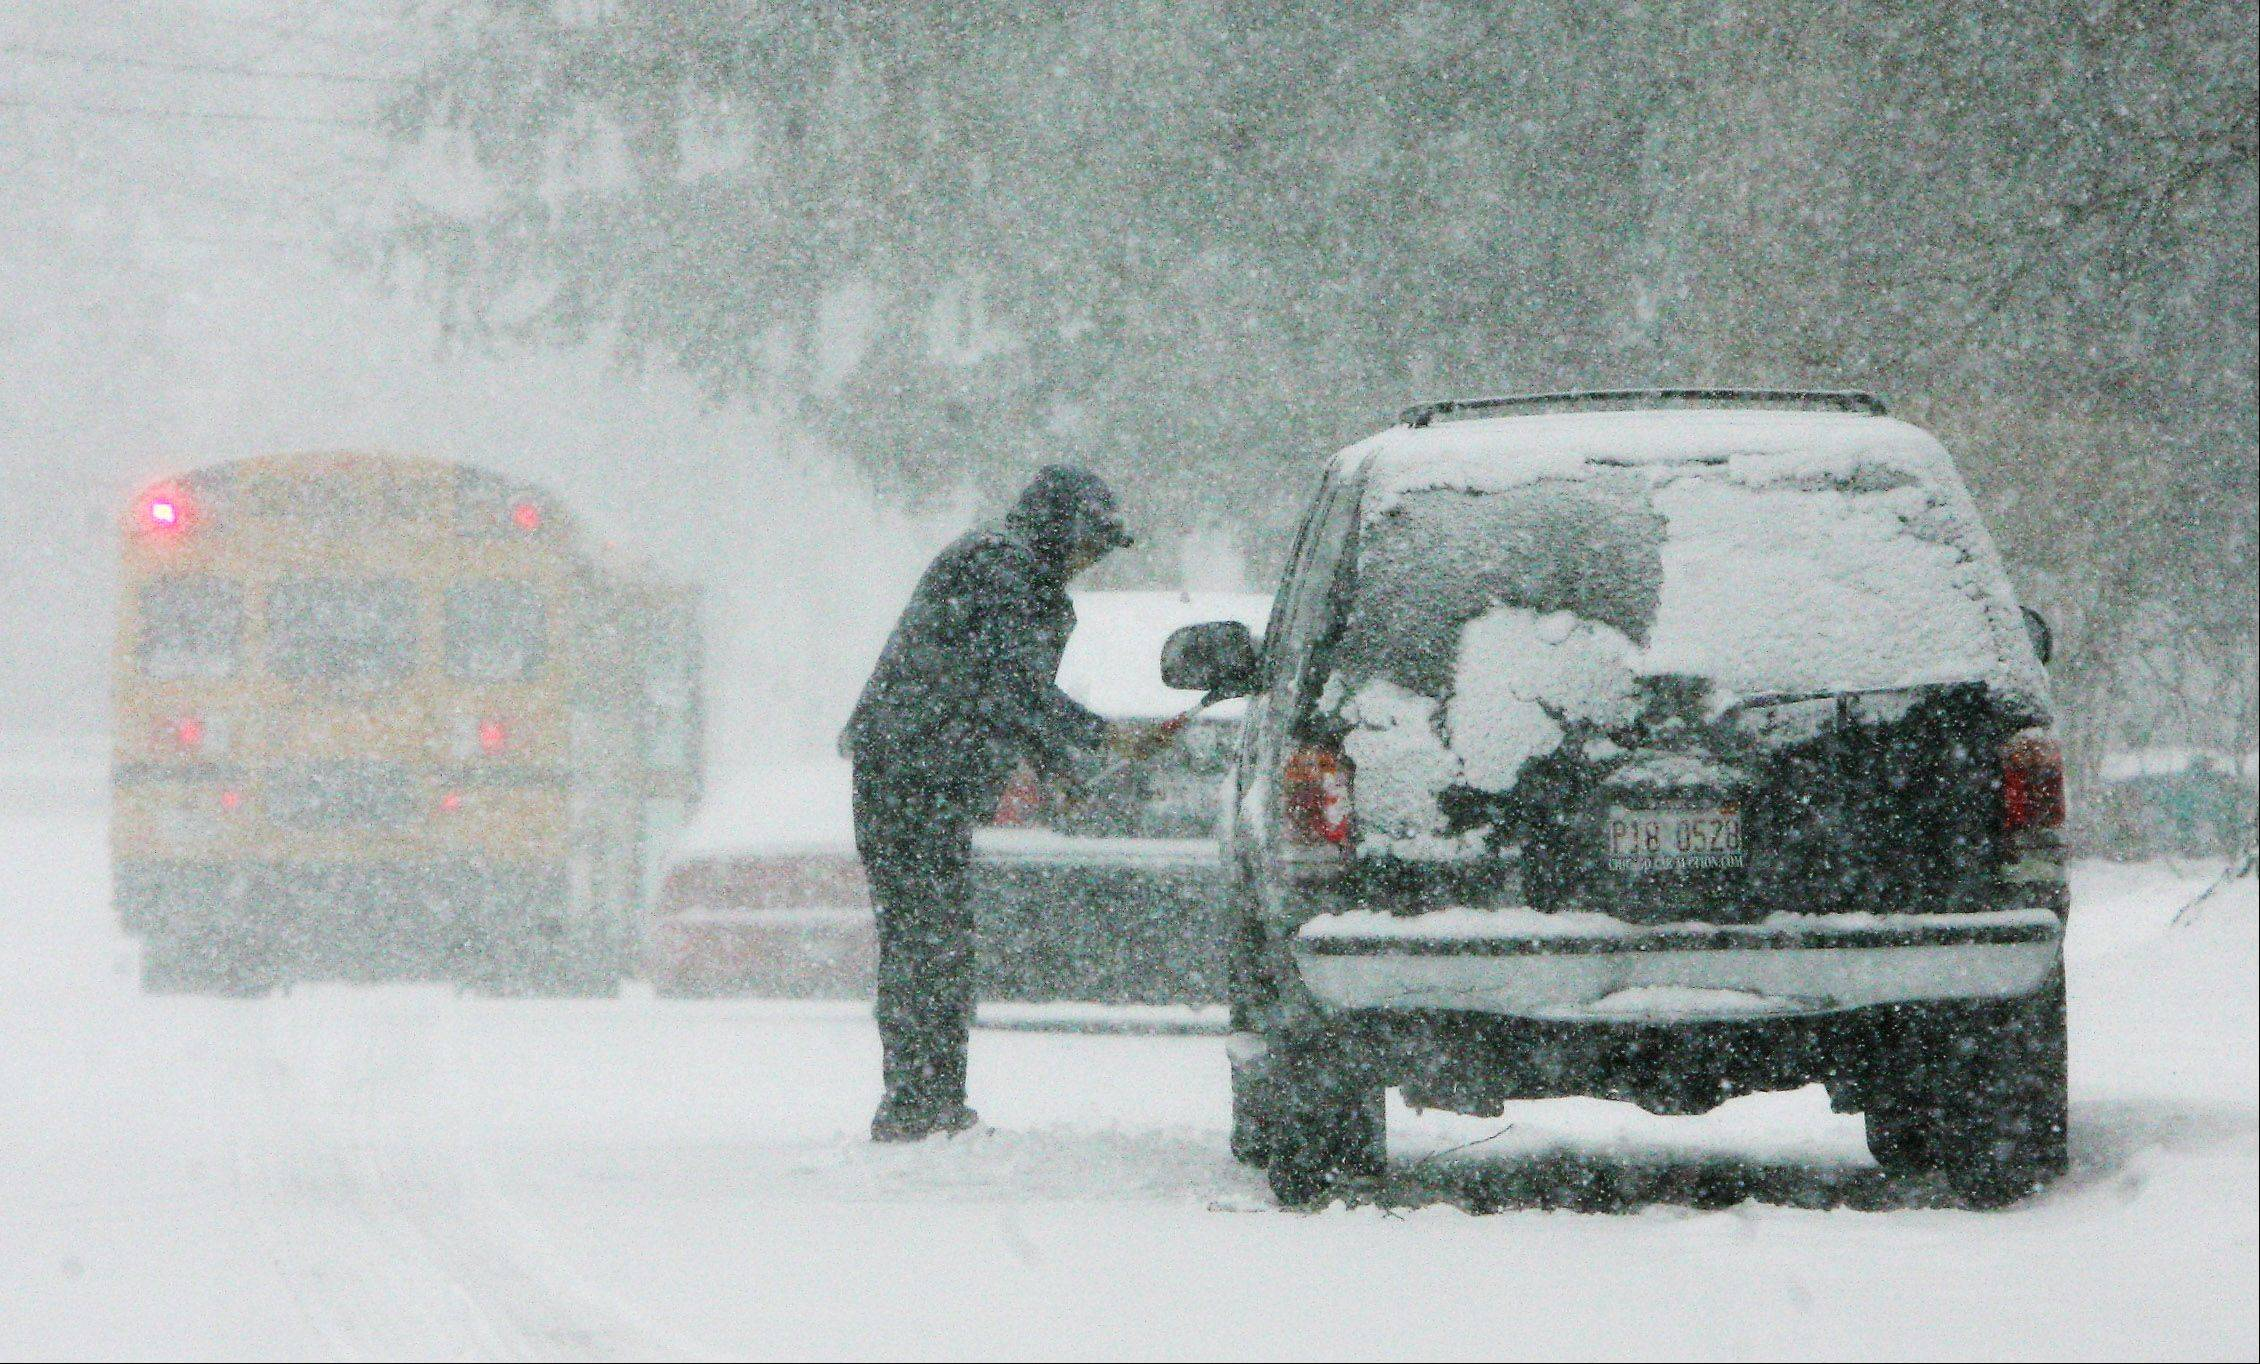 Juan Chavez, of Mundelein, clears the snow from his car during the snowstorm that hit Lake County on Tuesday. The blizzard was expected to drop up to six inches of snow in the area.